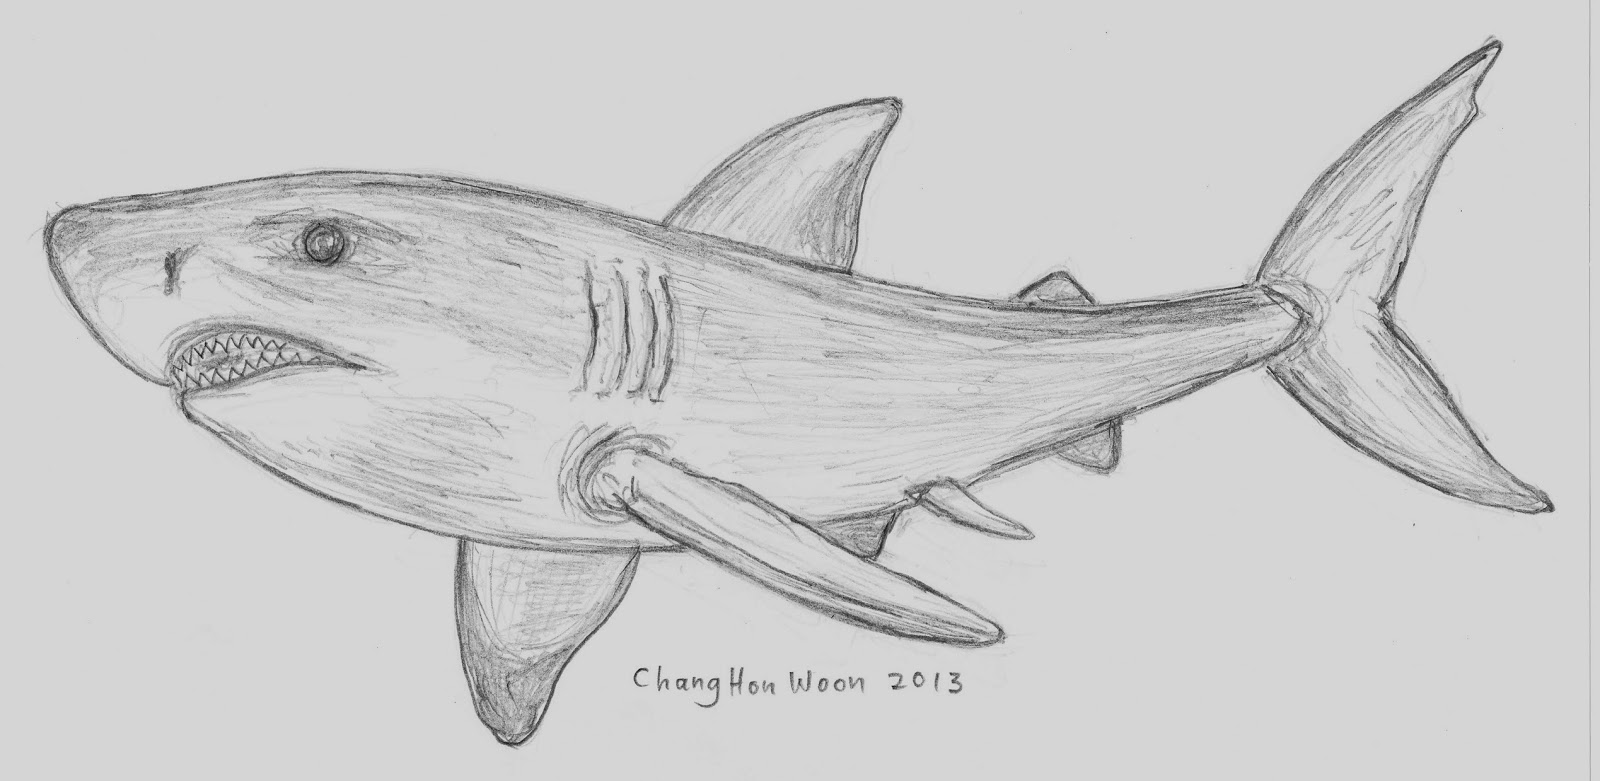 Drawn shark pencil MS PICTURES HOW WORD TO